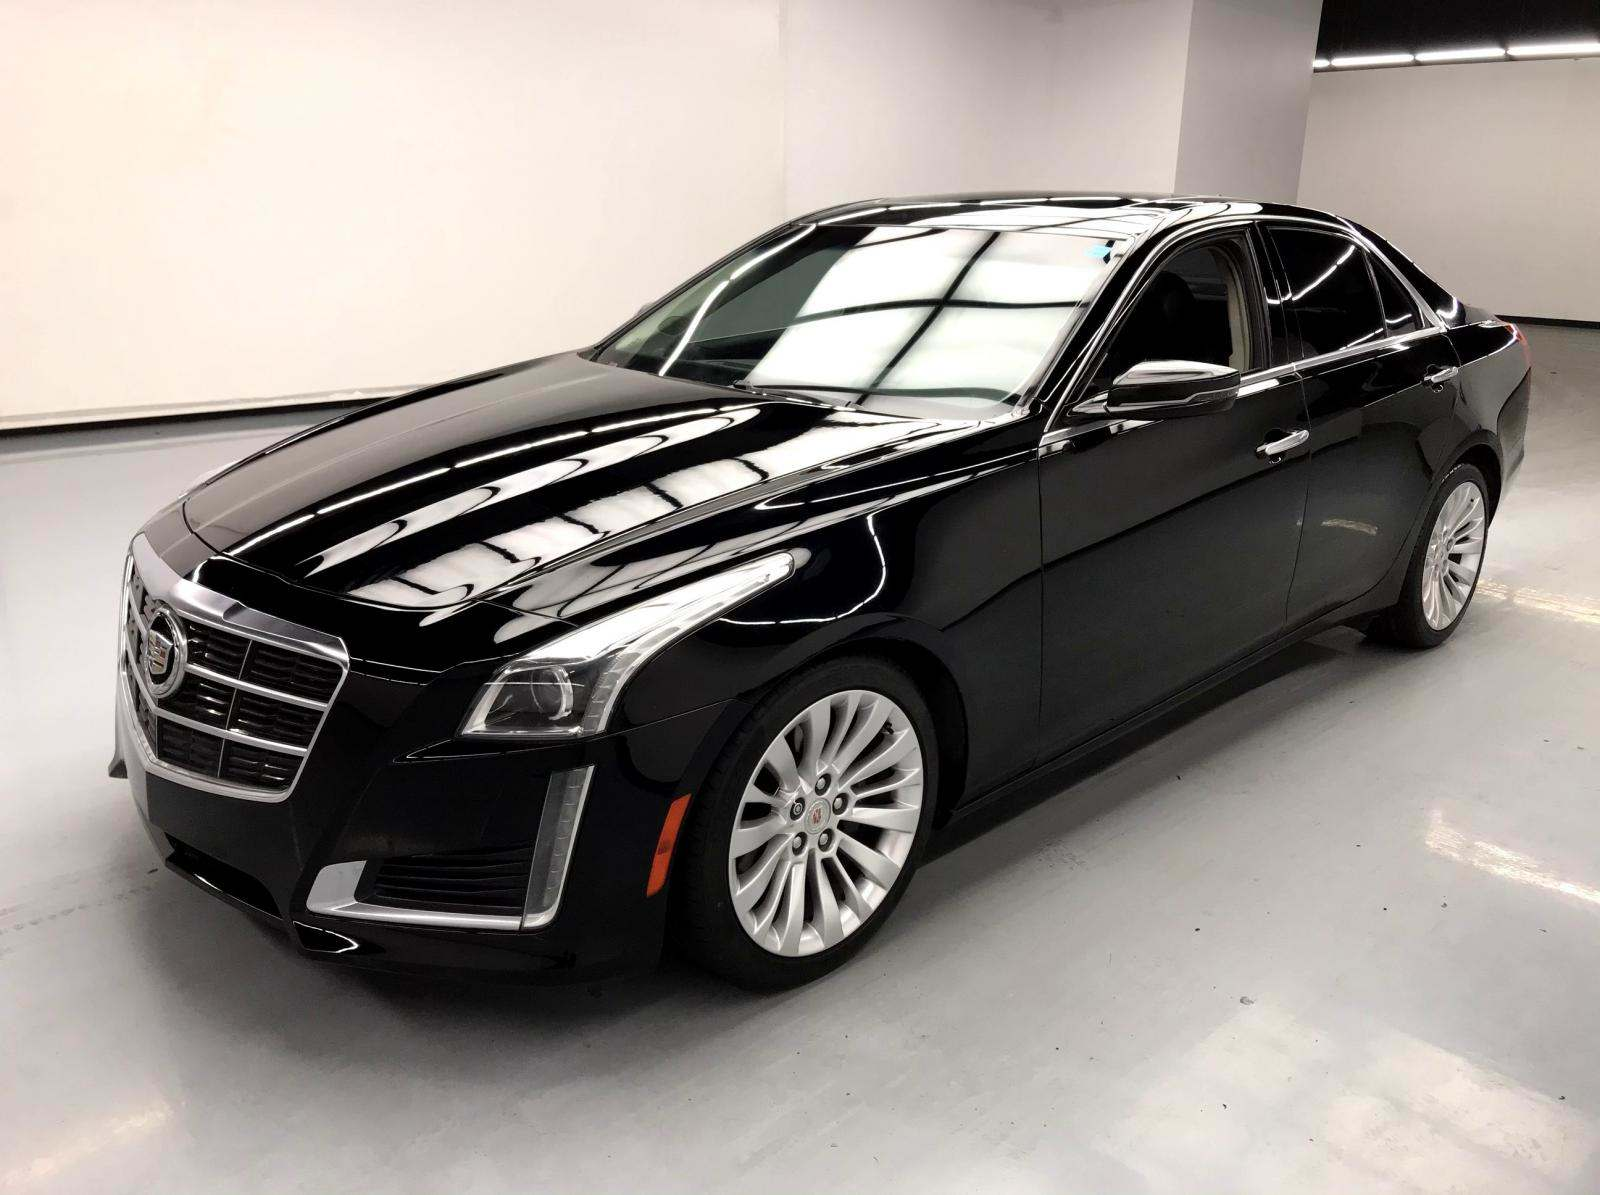 Cts For Sale >> Used 2014 Cadillac Cts For Sale 18 880 Vroom